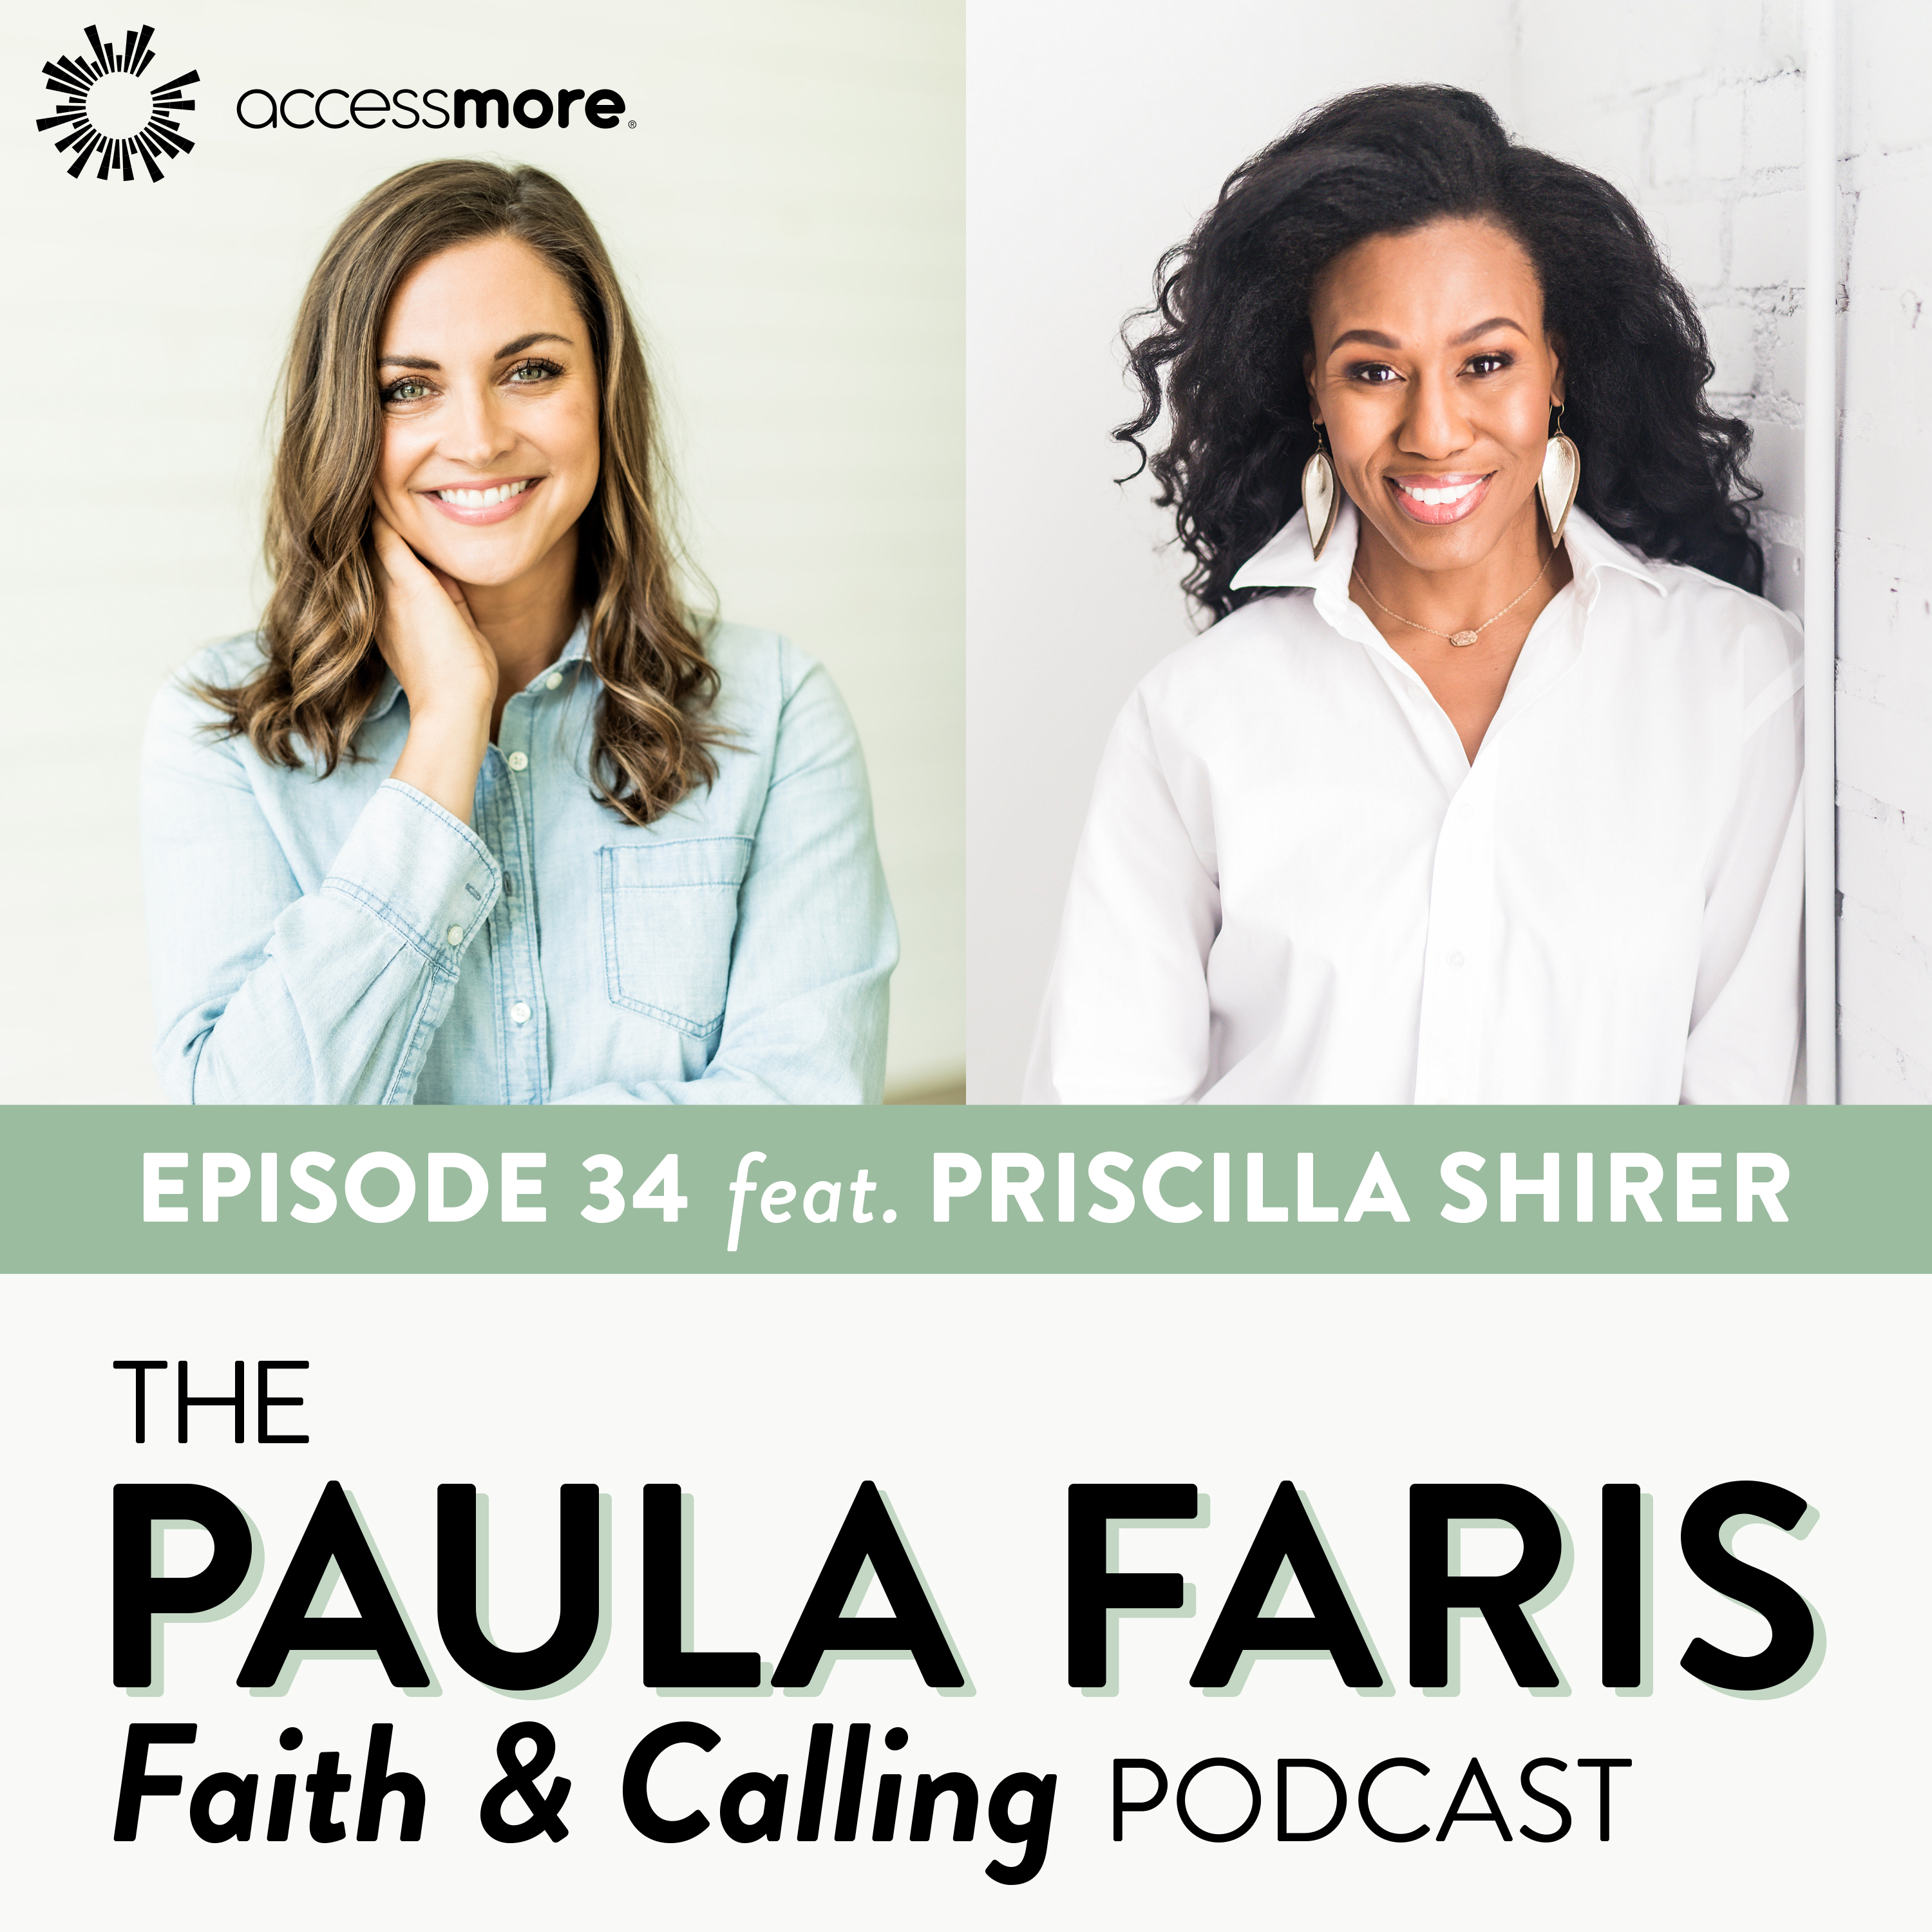 Ep 34 - Priscilla Shirer: Going Beyond Fear in Pursuit of Your Calling